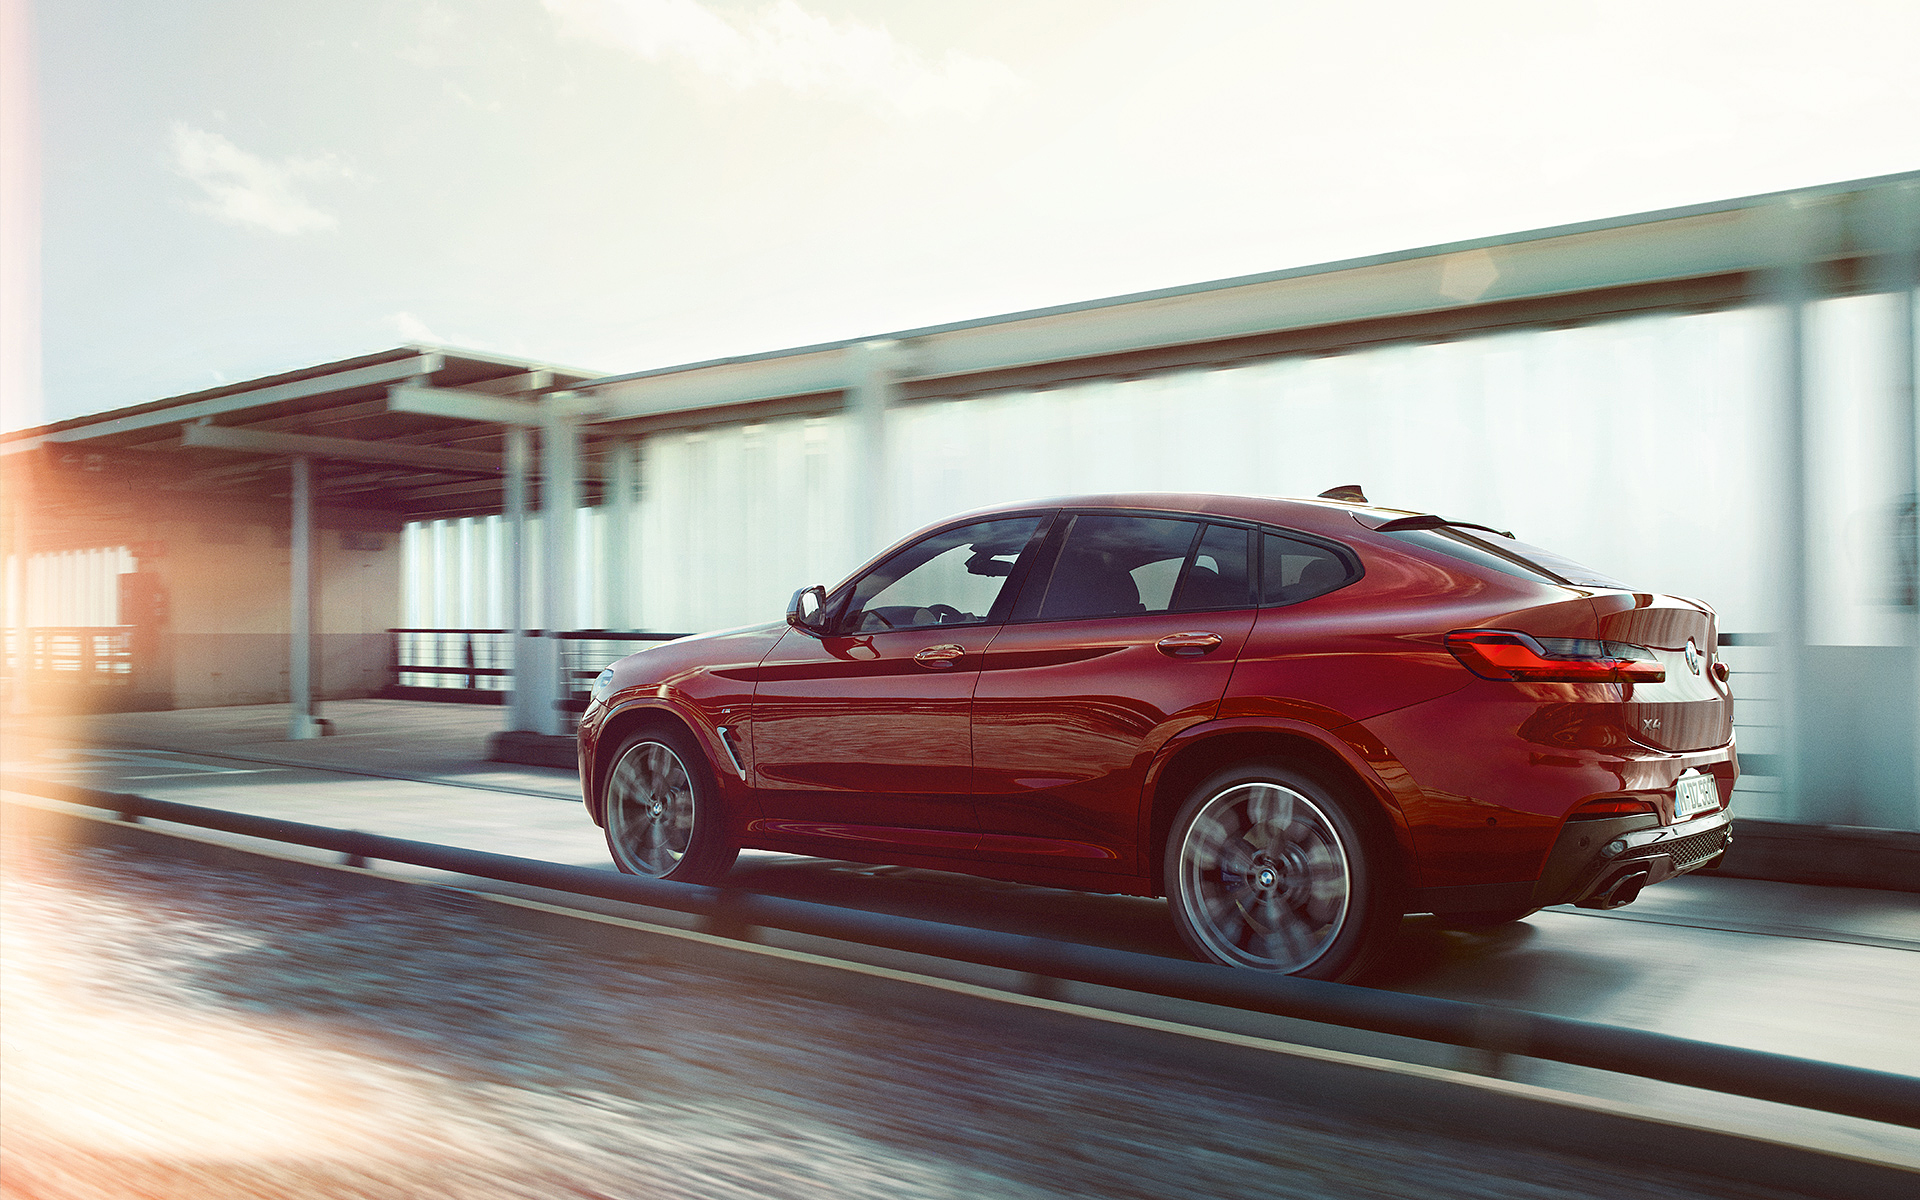 BMW X Series X4: metallic red three-quarter rear view, speedy car on the road.